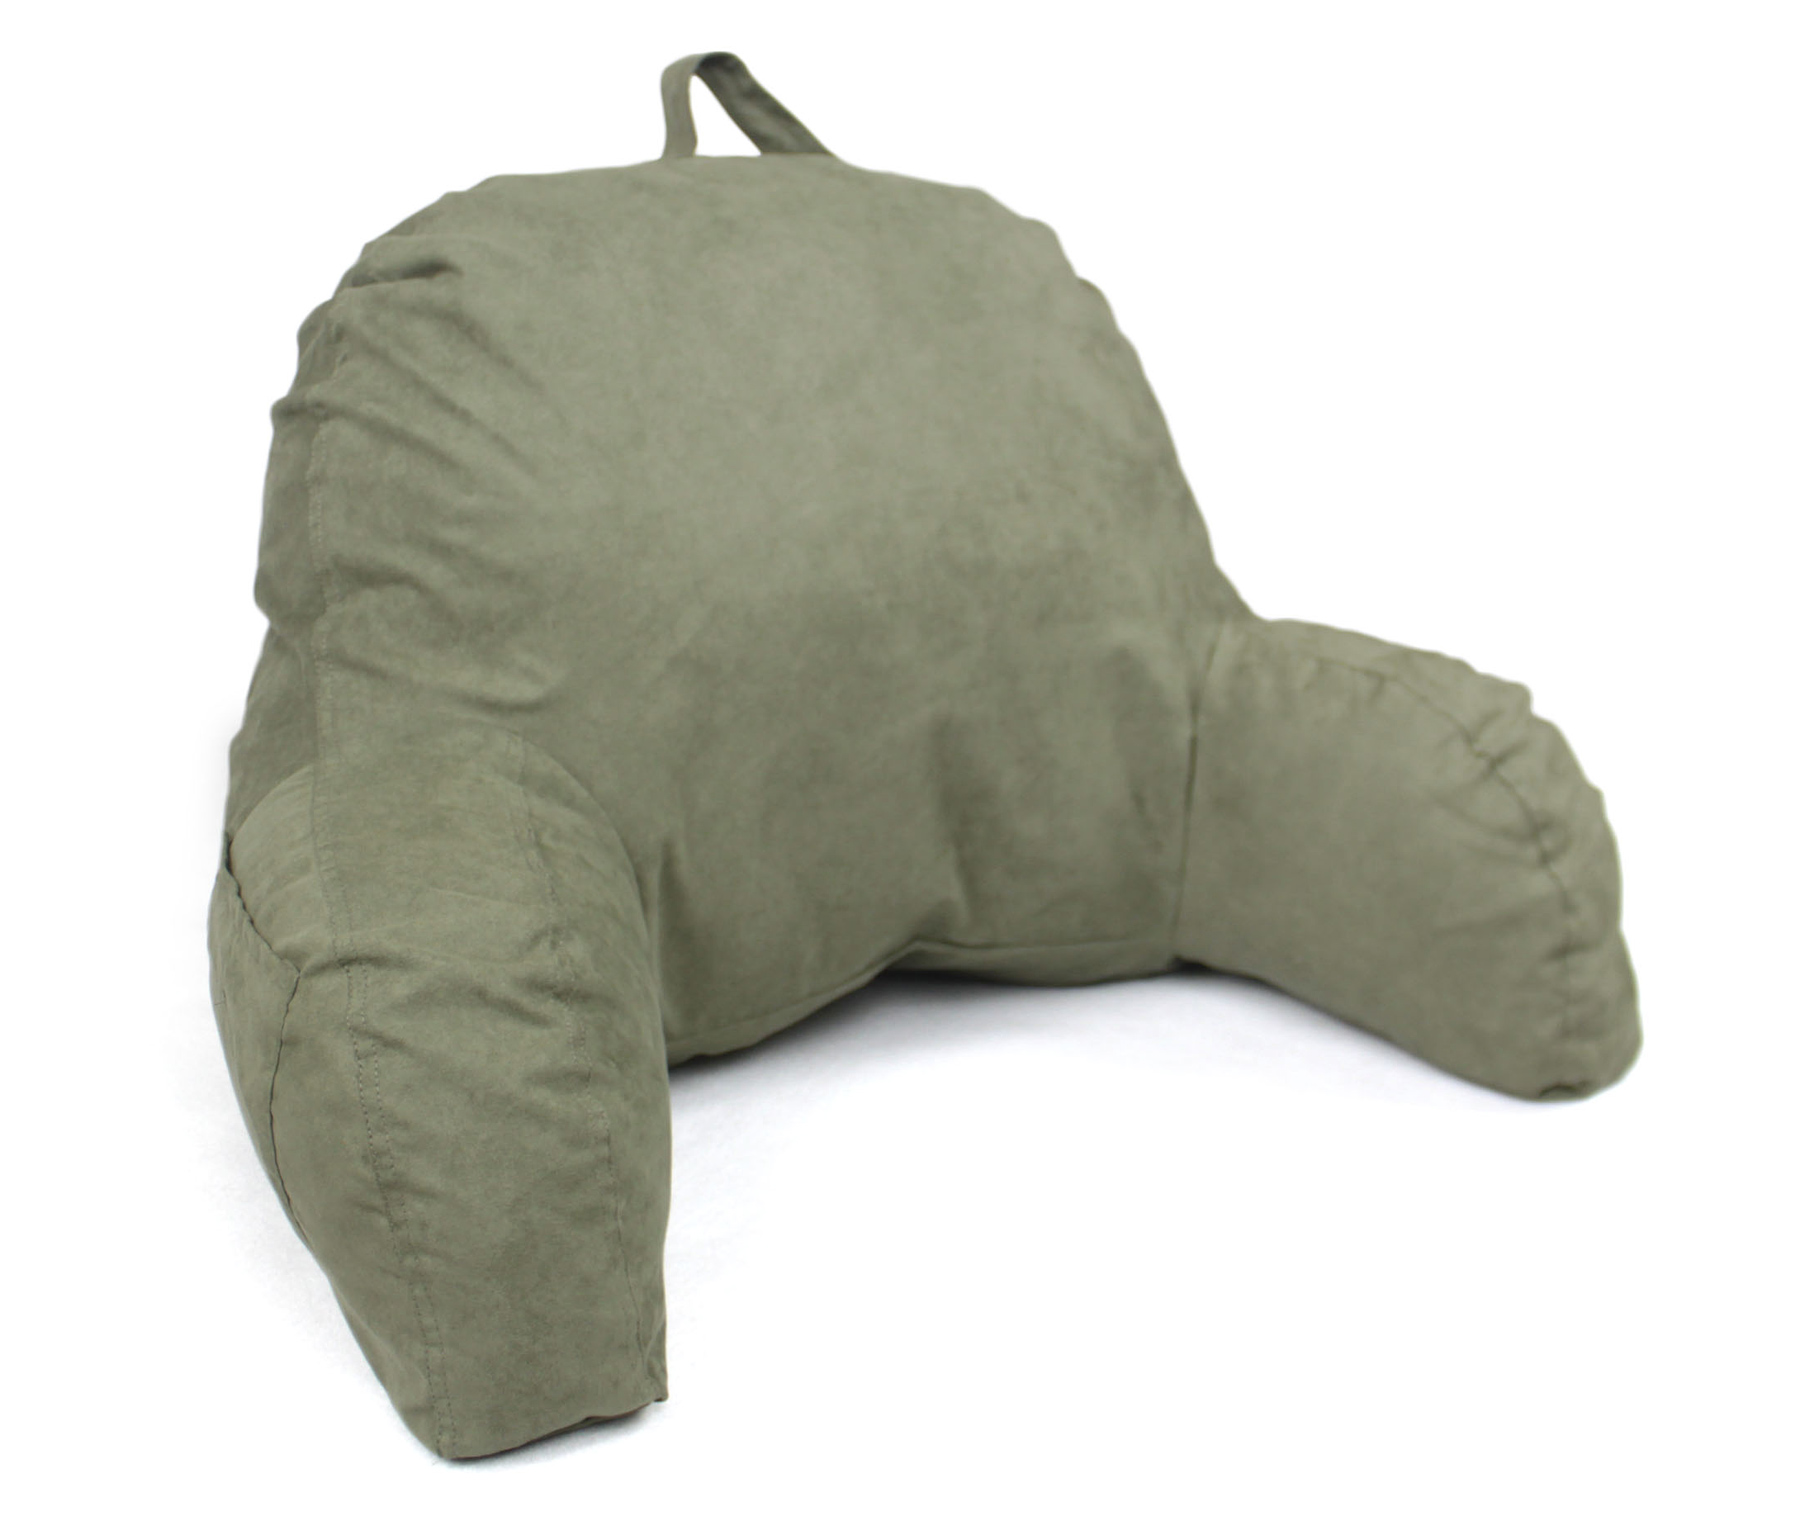 Microsuede Bedrest Pillow Green -Bed Rest Pillows W Arms for Reading in Bed by Living Healthy Products